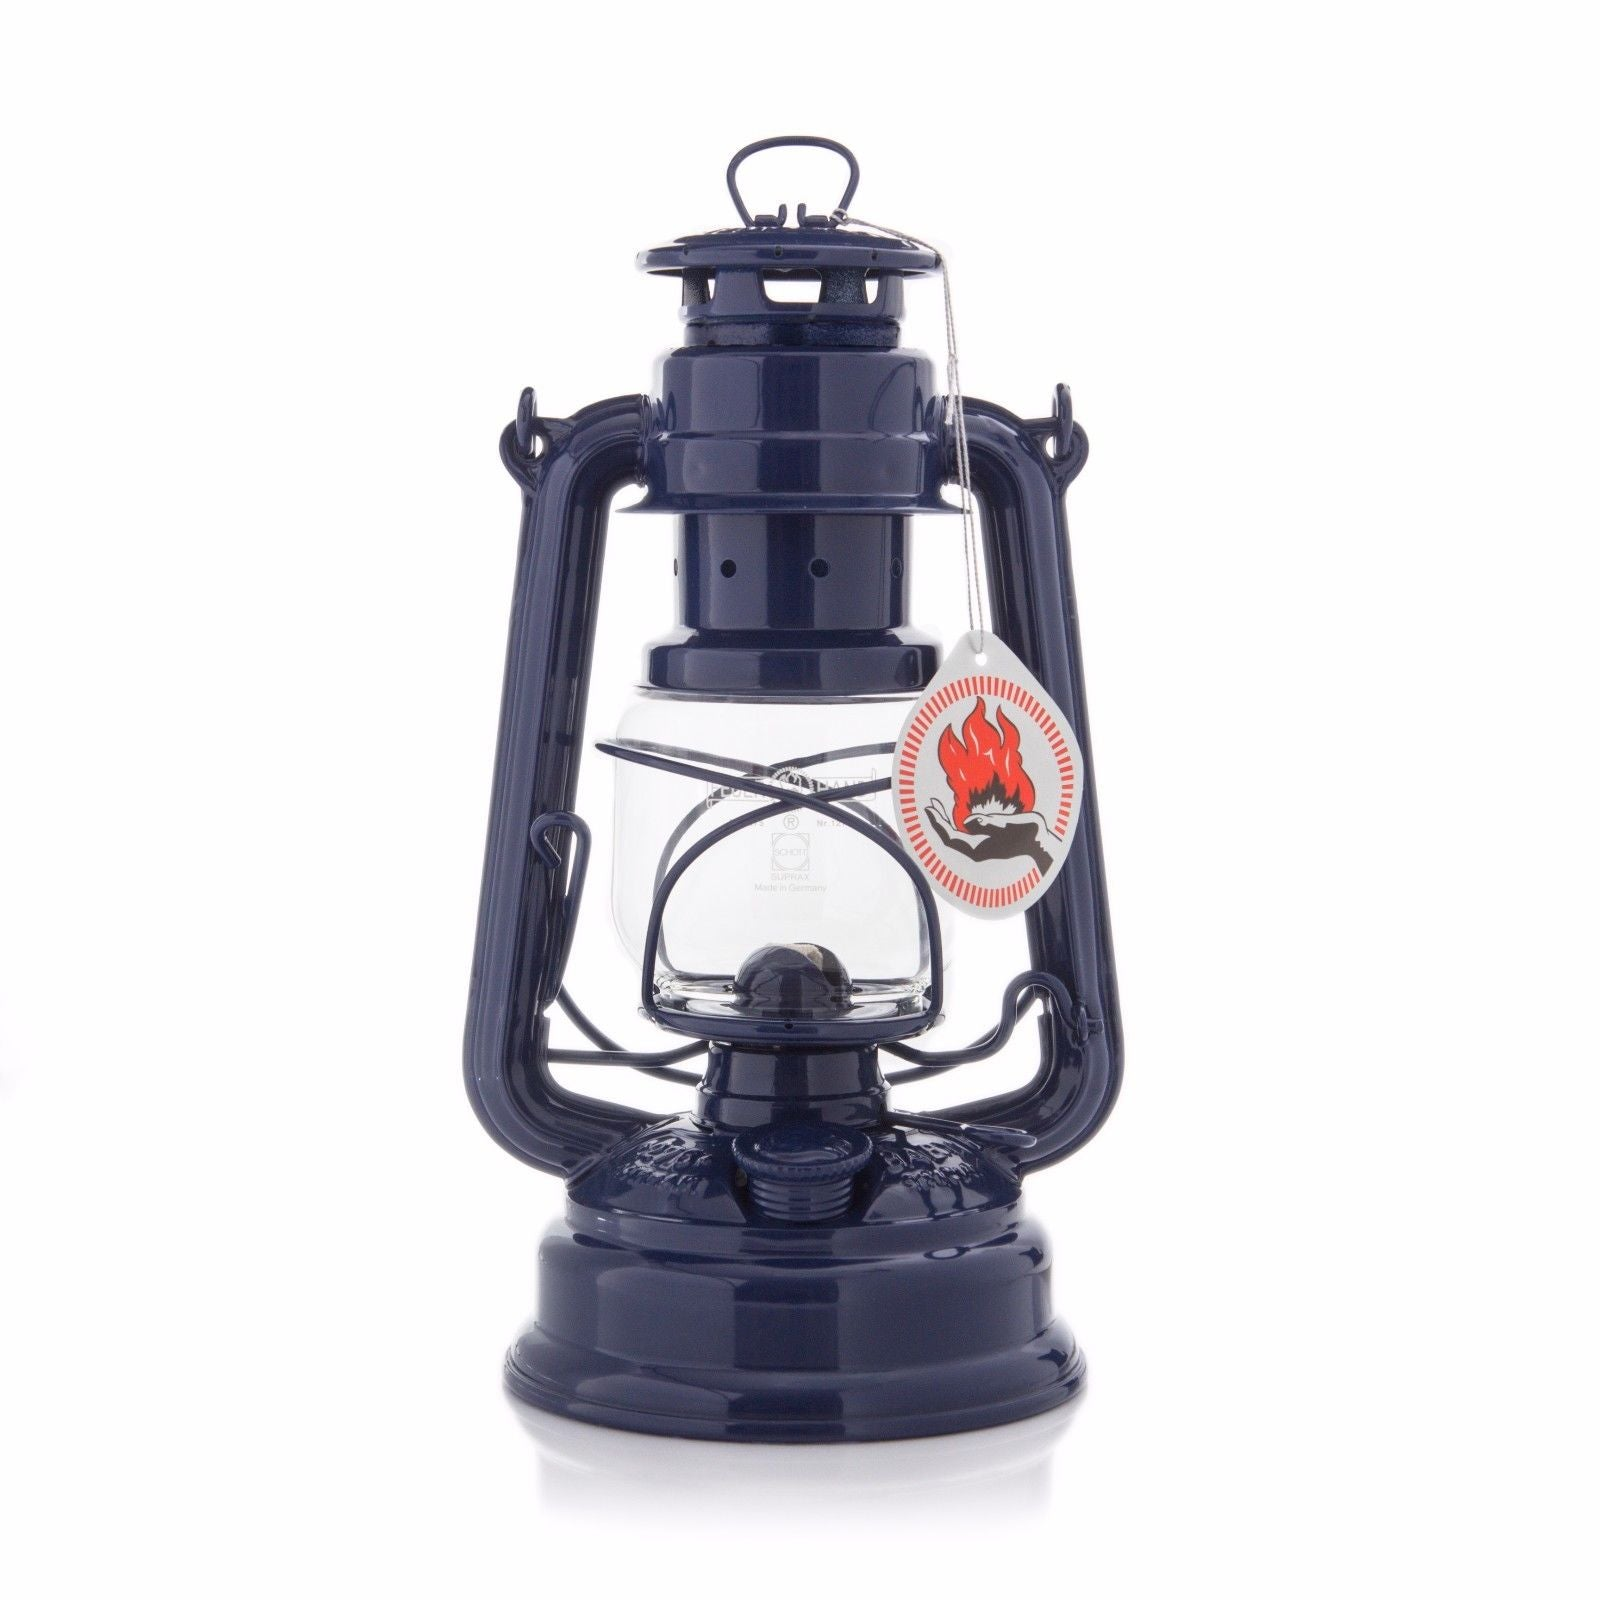 ORIGINAL FEUERHAND HURRICANE KEROSENE OIL CAMPING OUTDOOR LANTERN LAMP- BLUE